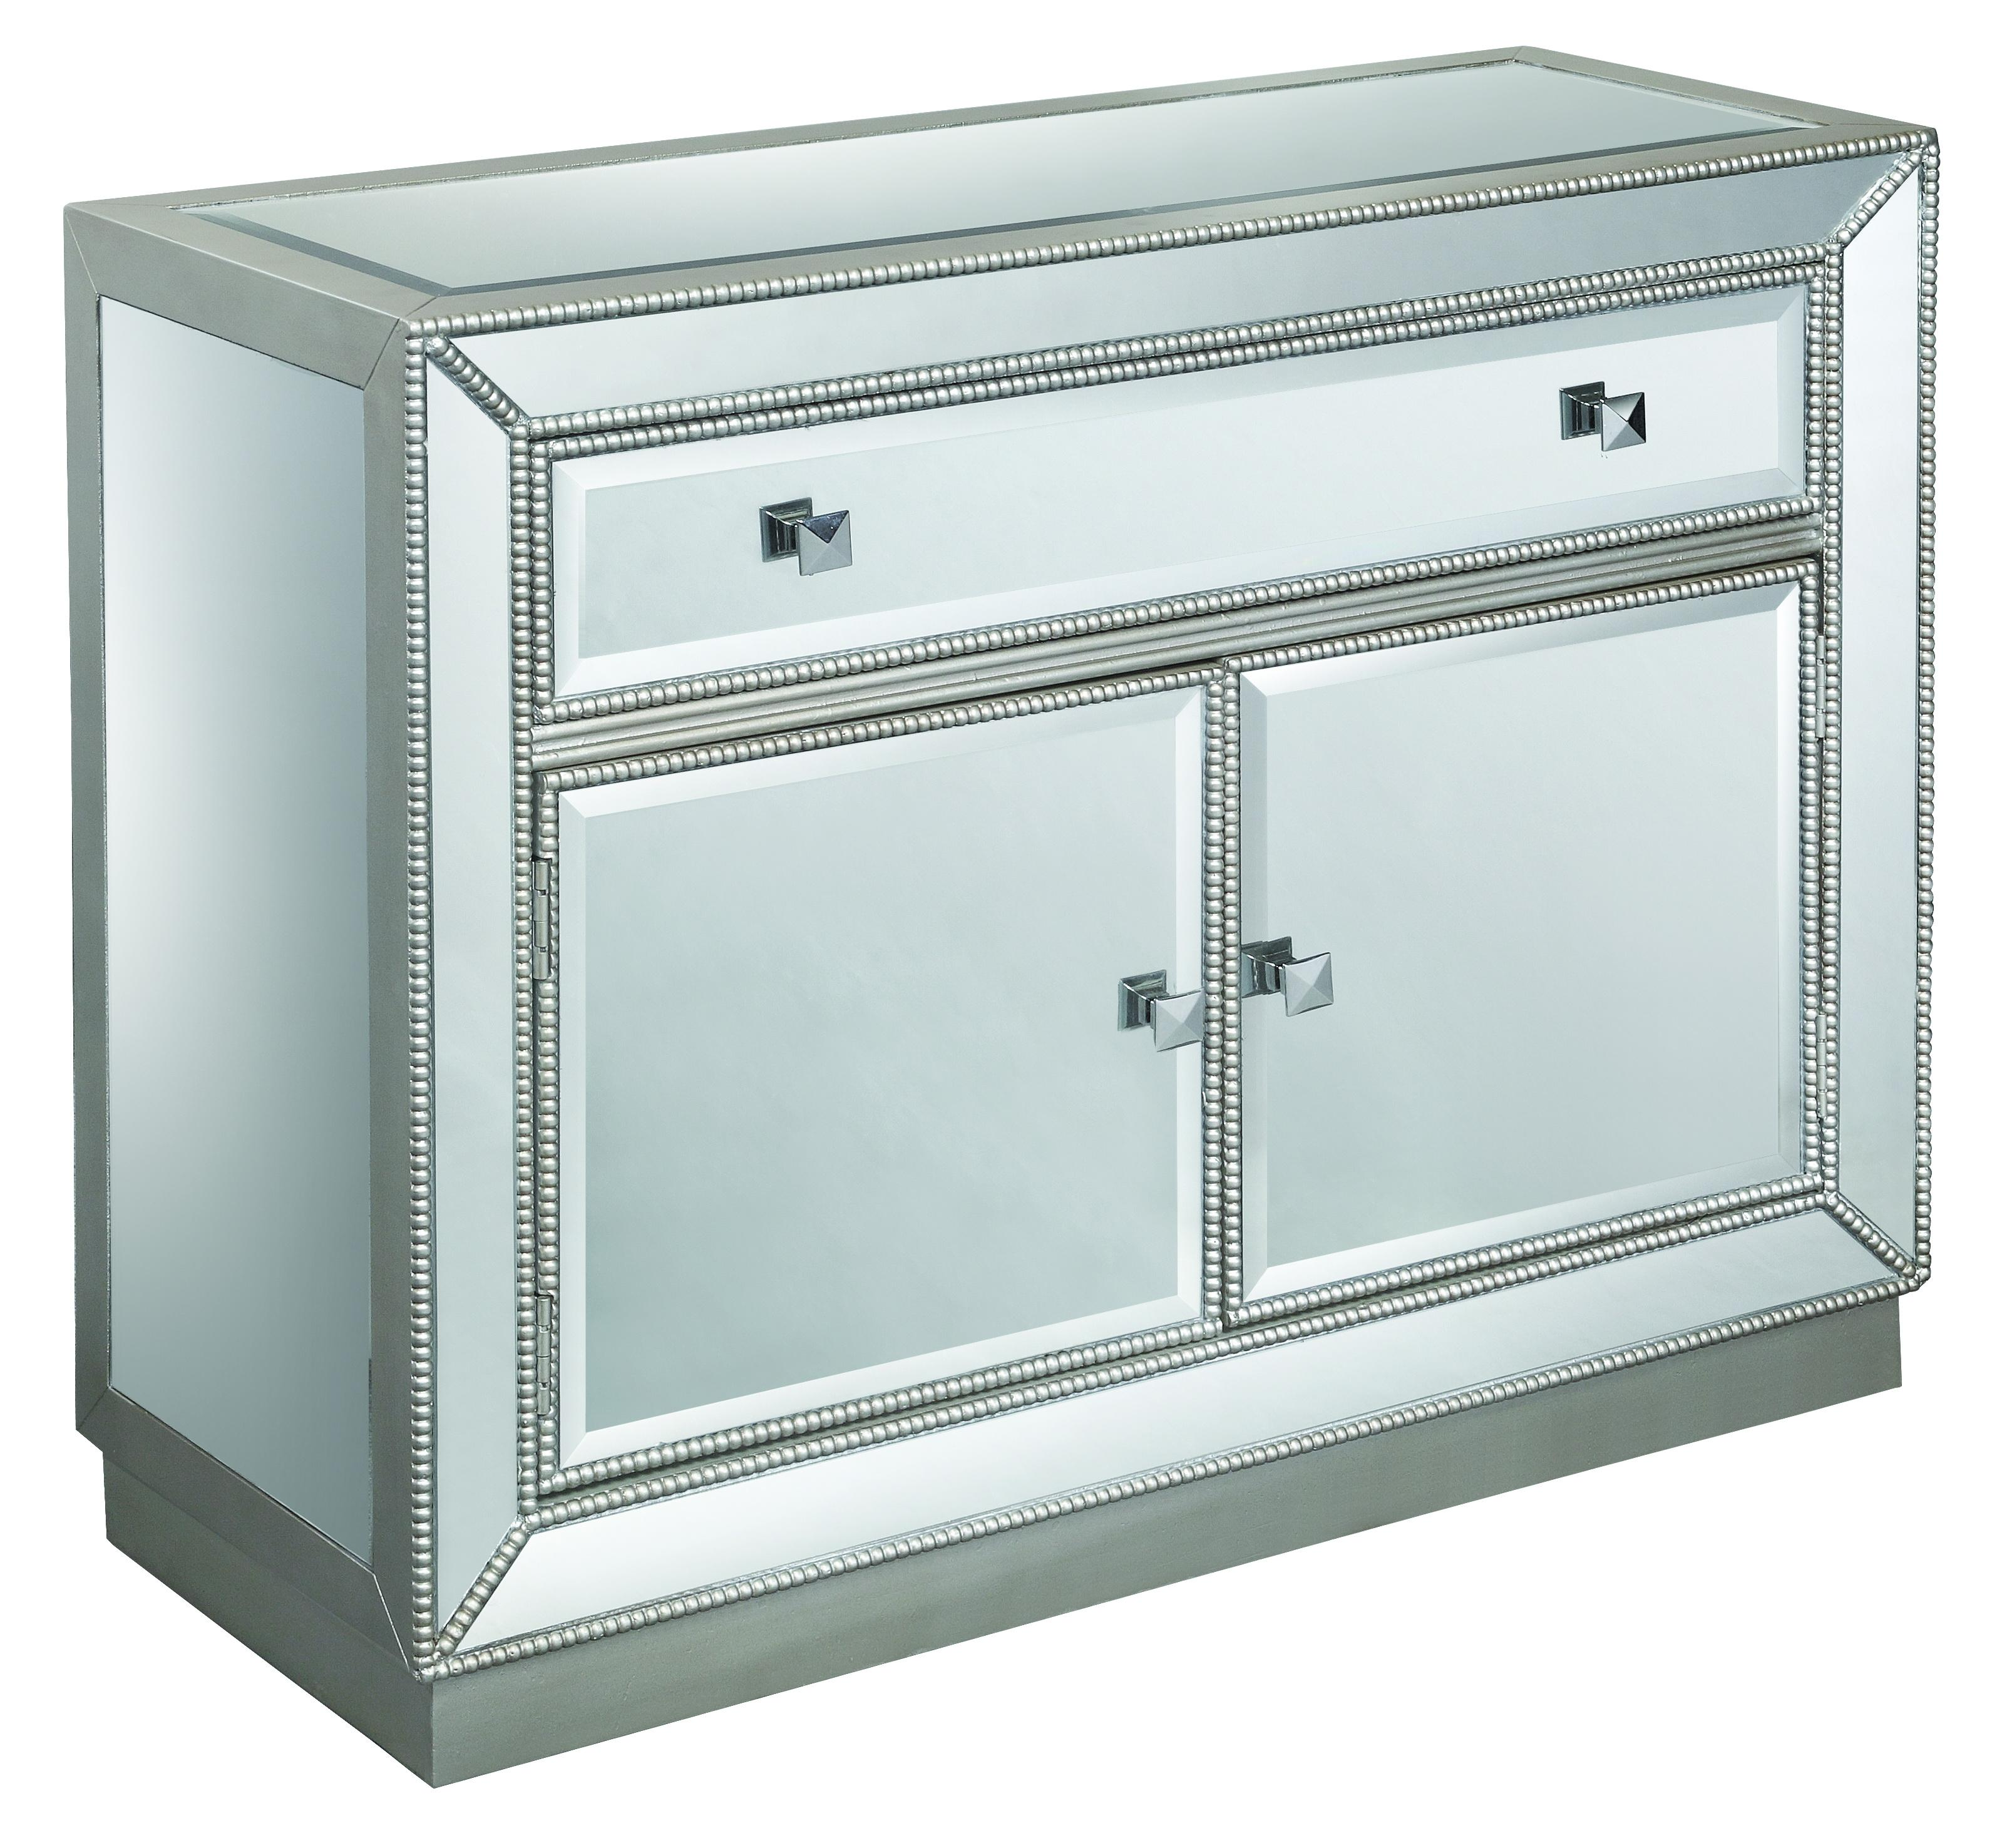 Accents by Andy Stein One Drawer Two Door Cabinet by Coast to Coast Imports at Upper Room Home Furnishings